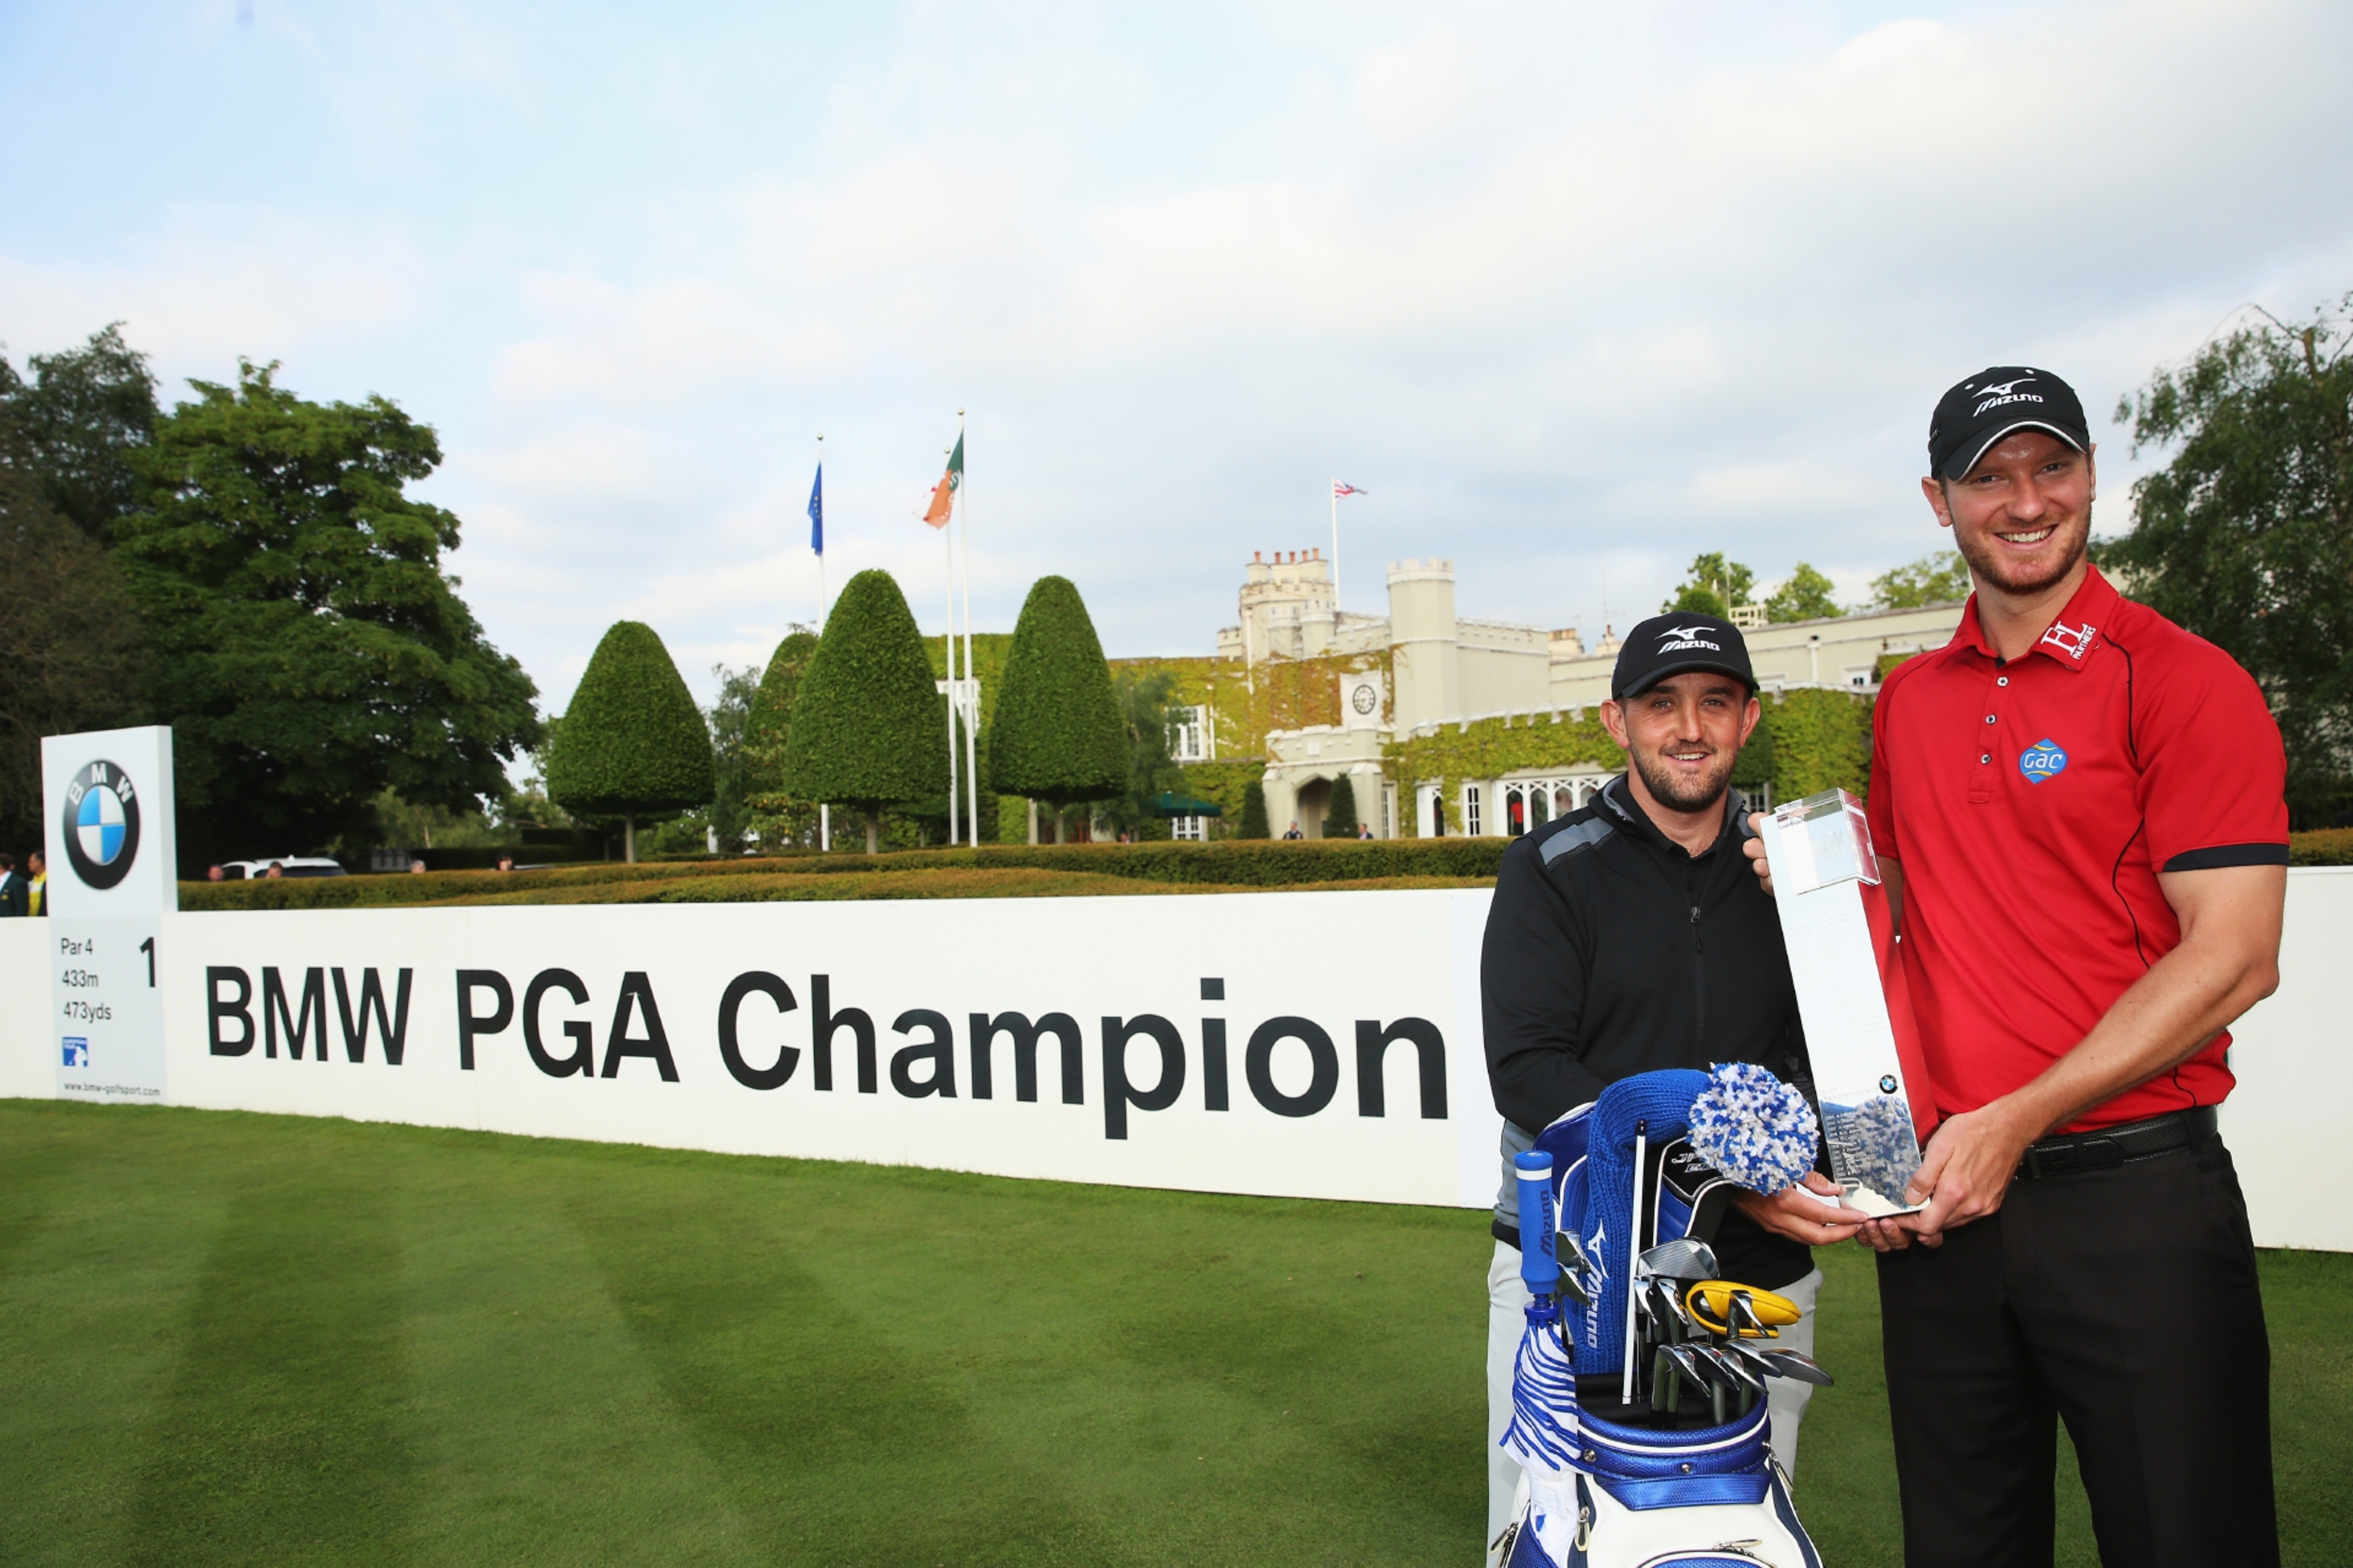 Chris Wood and Scottish caddie Mark Crane following the Englishman's BMW PGA victory.